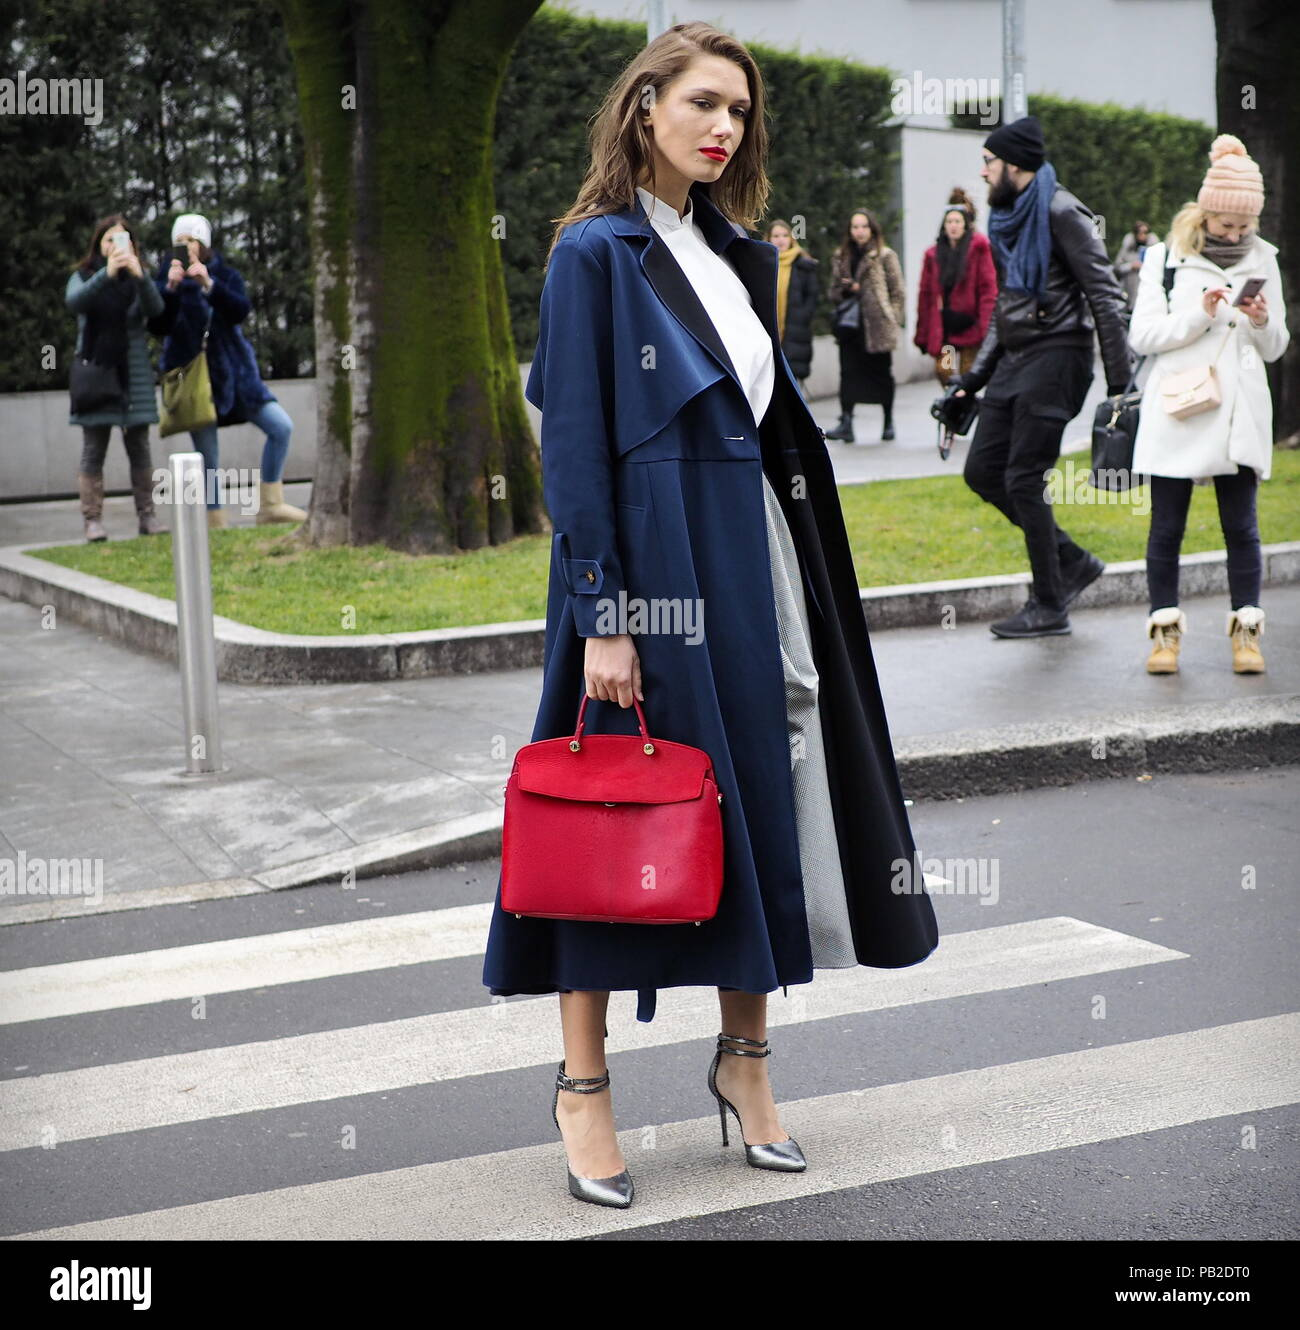 MILAN - FEBRUARY 25, 2018: Fashion blogger posing for photographers in the street before ARMANI fashion show - Stock Image